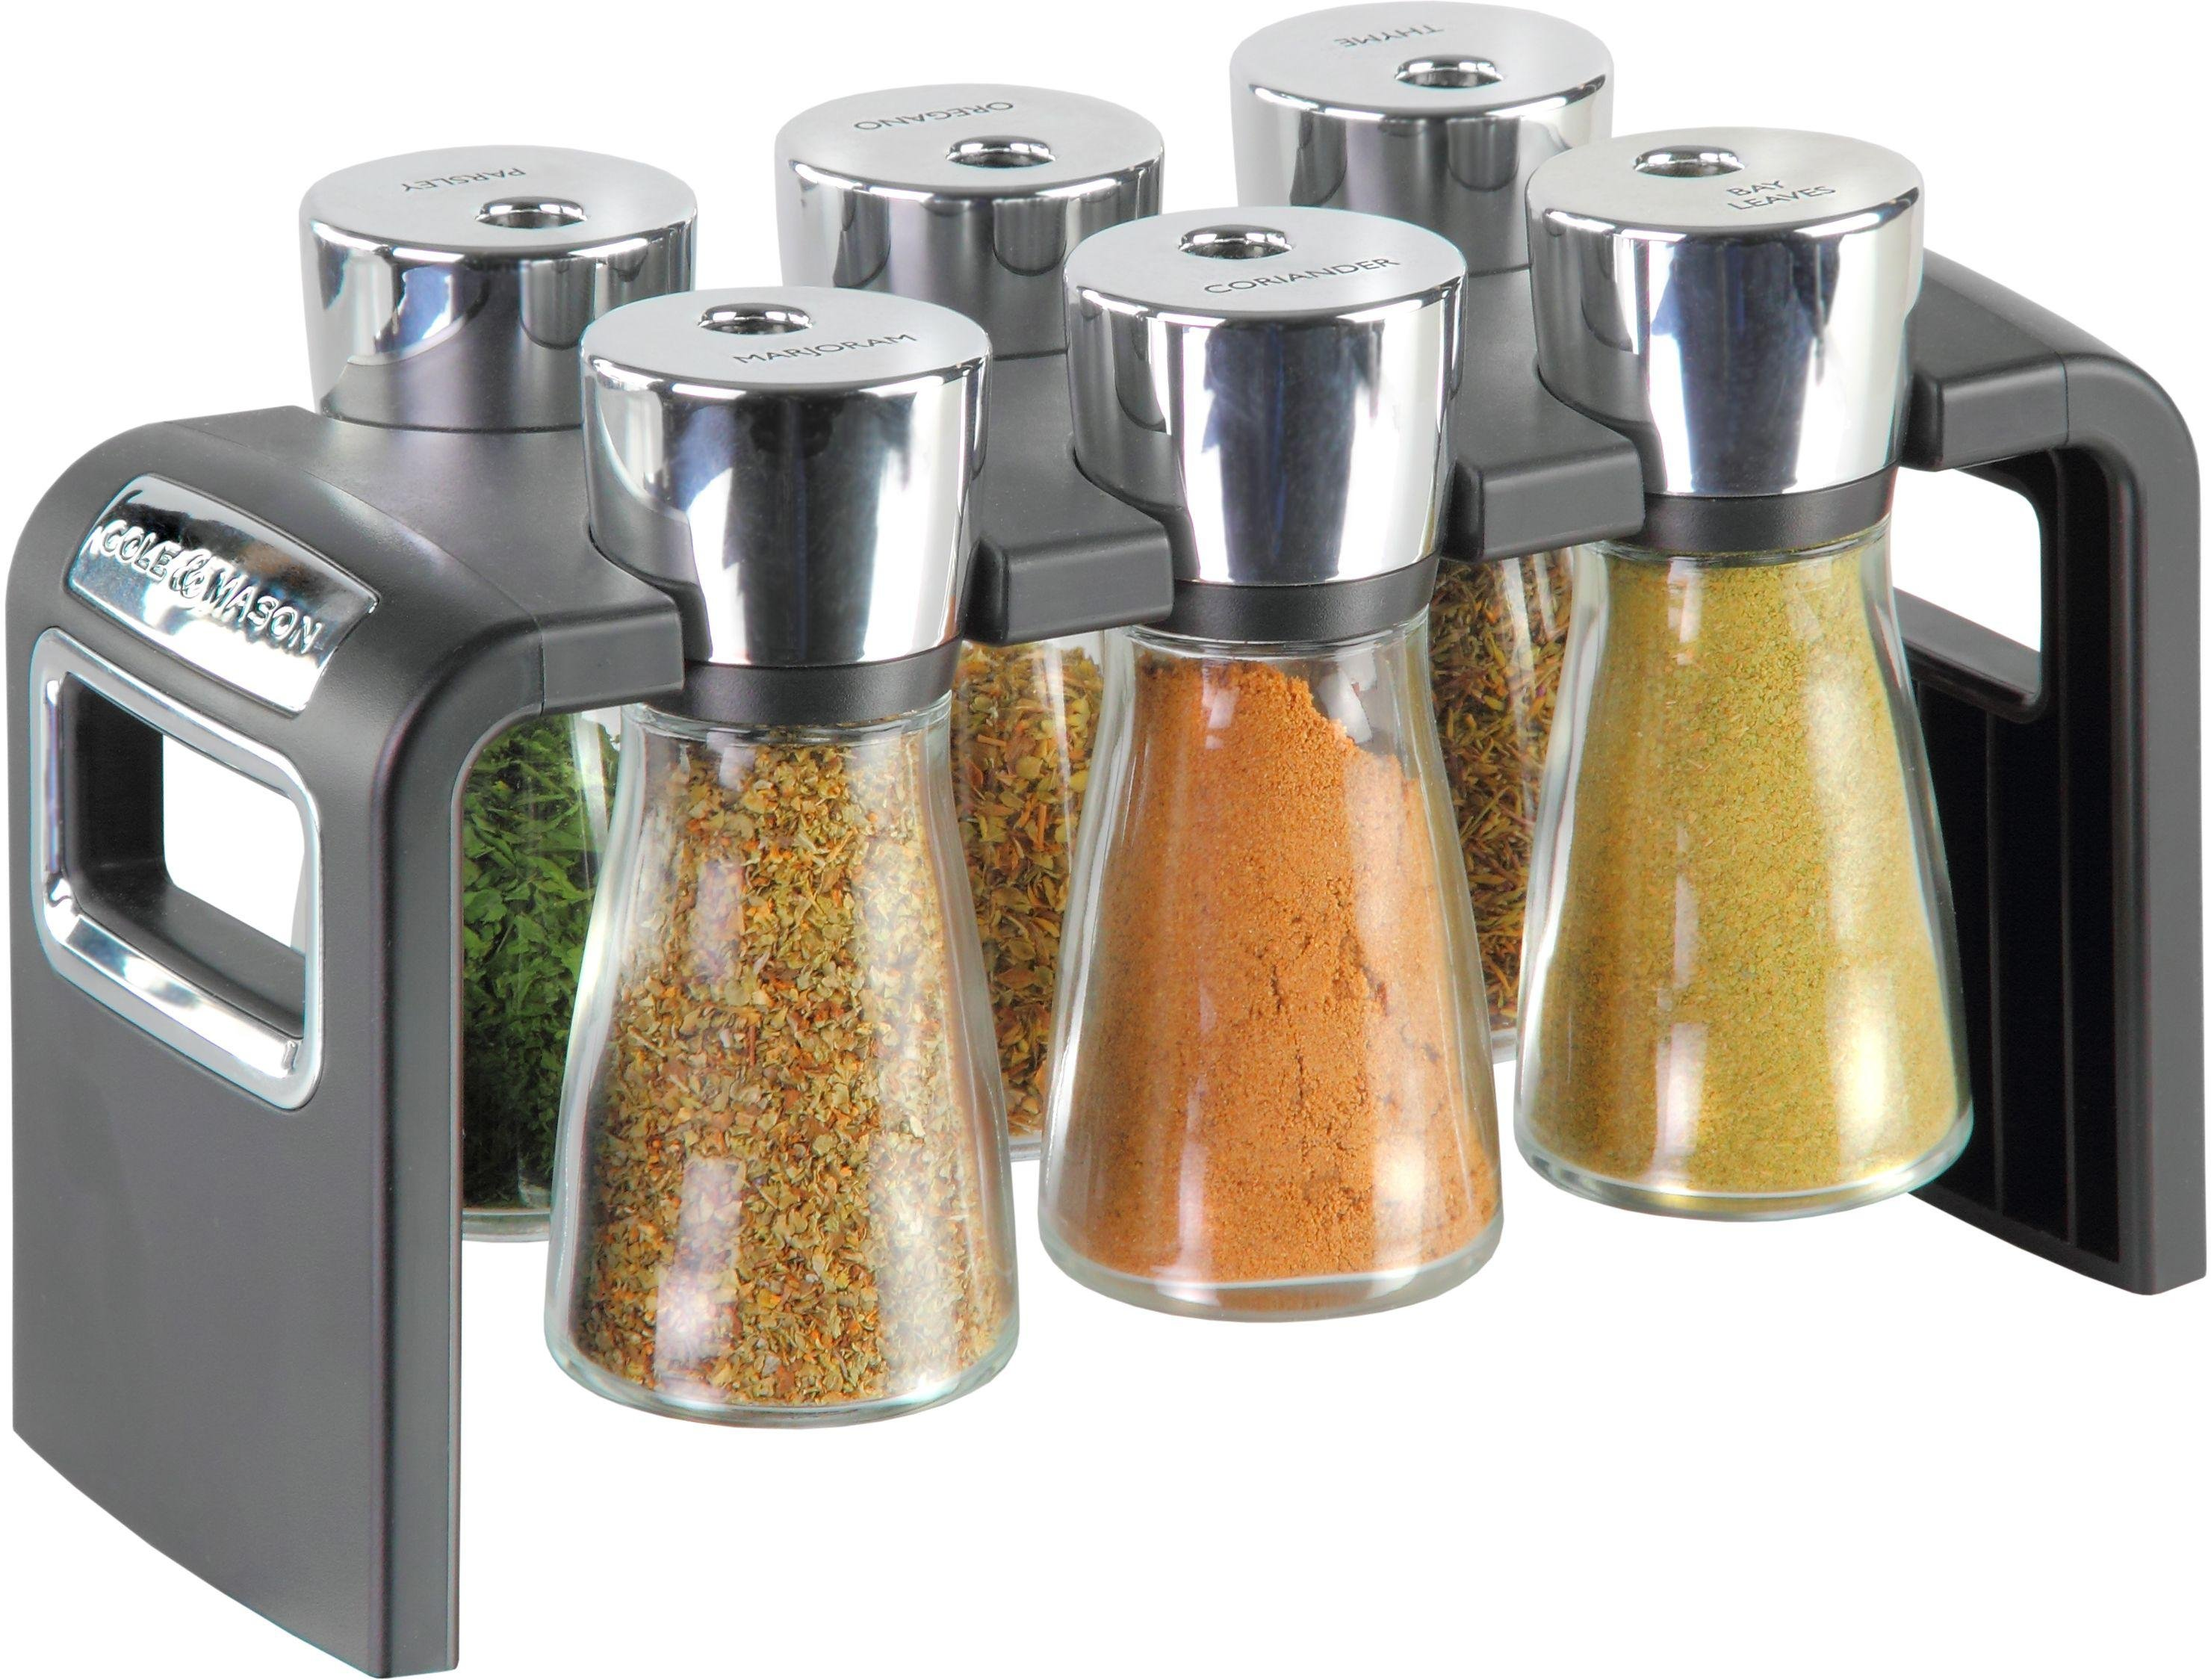 Image of Cole & Mason - 6 Jar Spice Rack